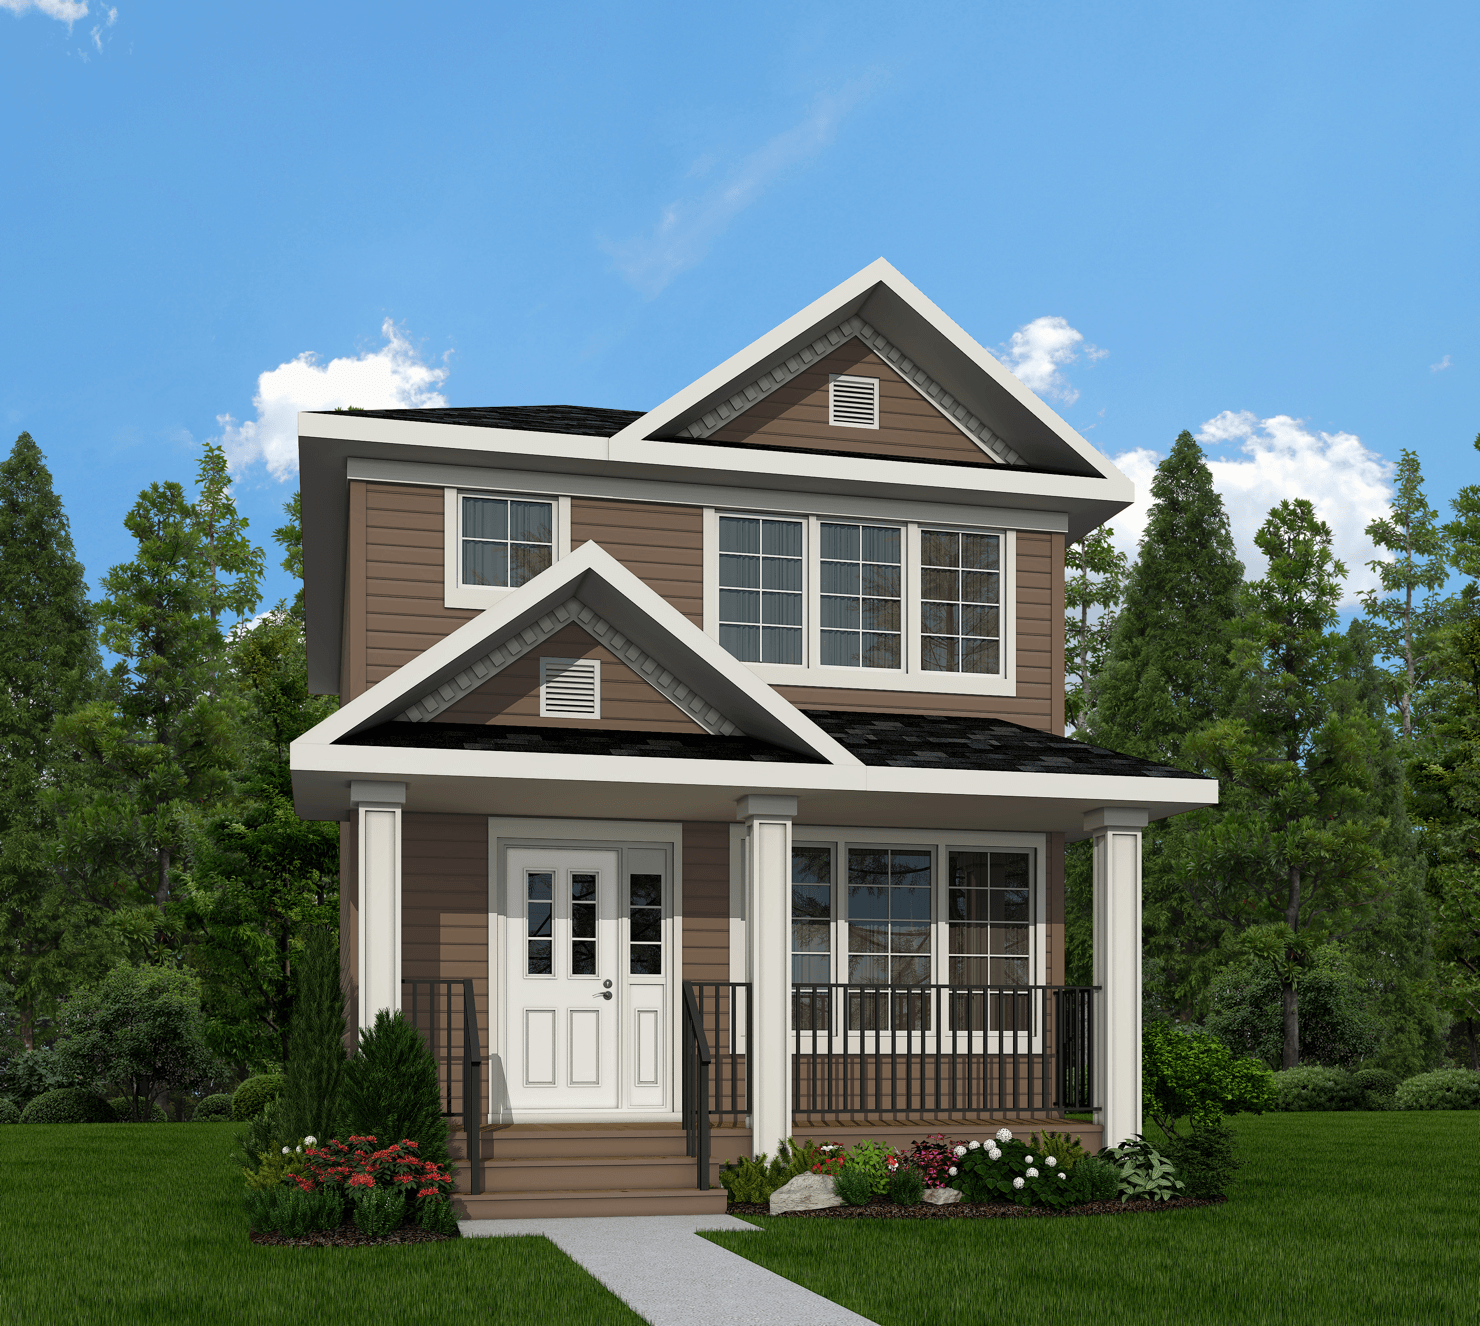 A Look At Your Home Elevation Options Durham Exterior Image